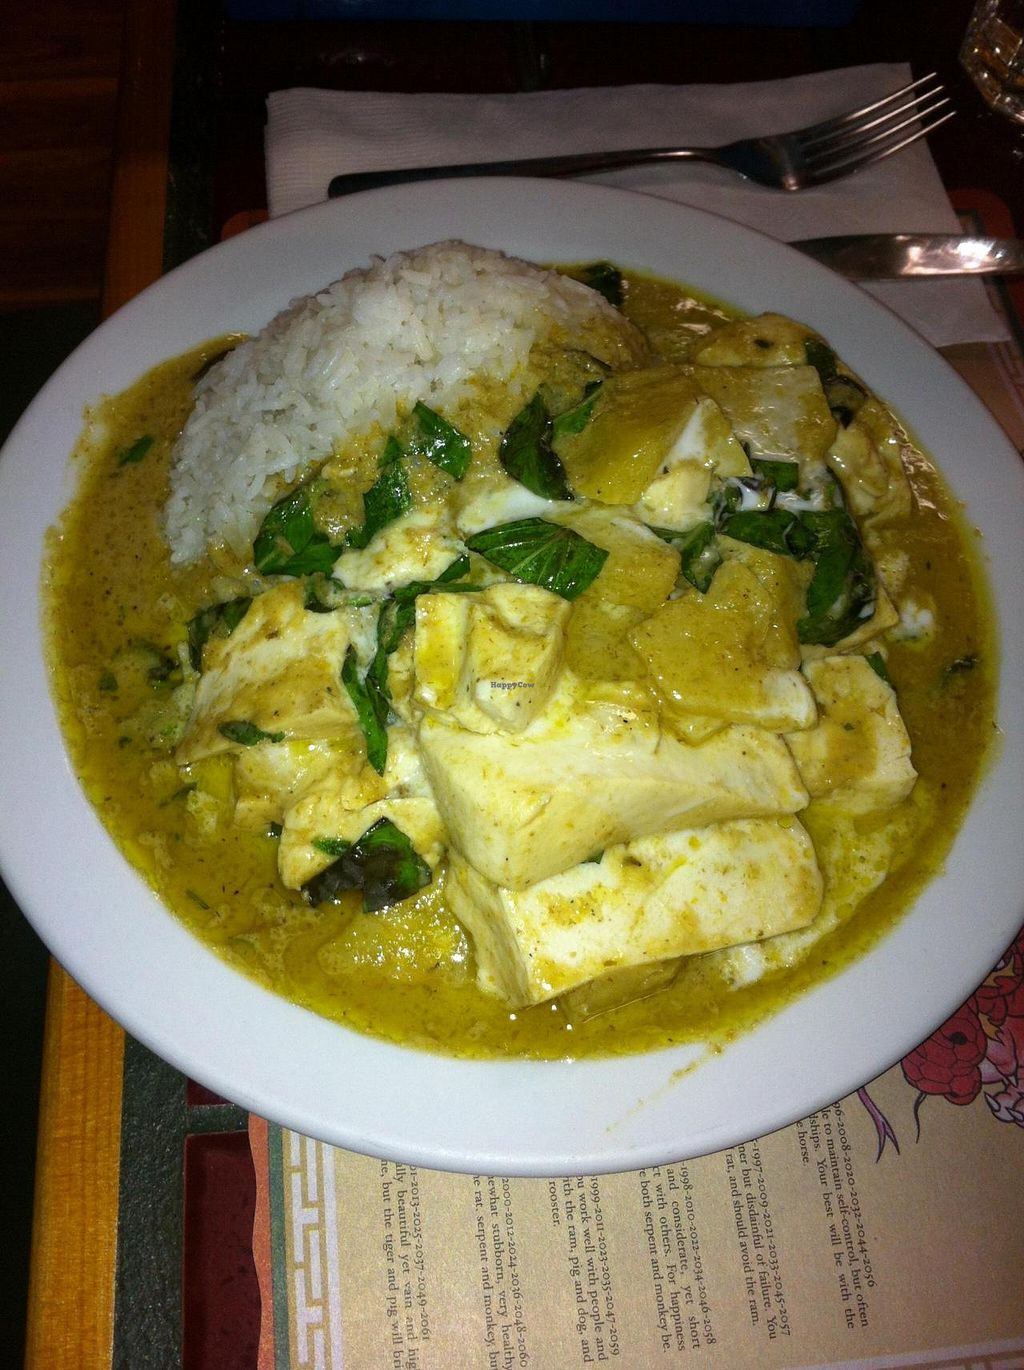 "Photo of Pat's Restaurant  by <a href=""/members/profile/Little%20Laura"">Little Laura</a> <br/>A vegetarian dish - green curry with pineapple and tofu… sweet and spicy.   <br/> November 19, 2014  - <a href='/contact/abuse/image/51589/86047'>Report</a>"